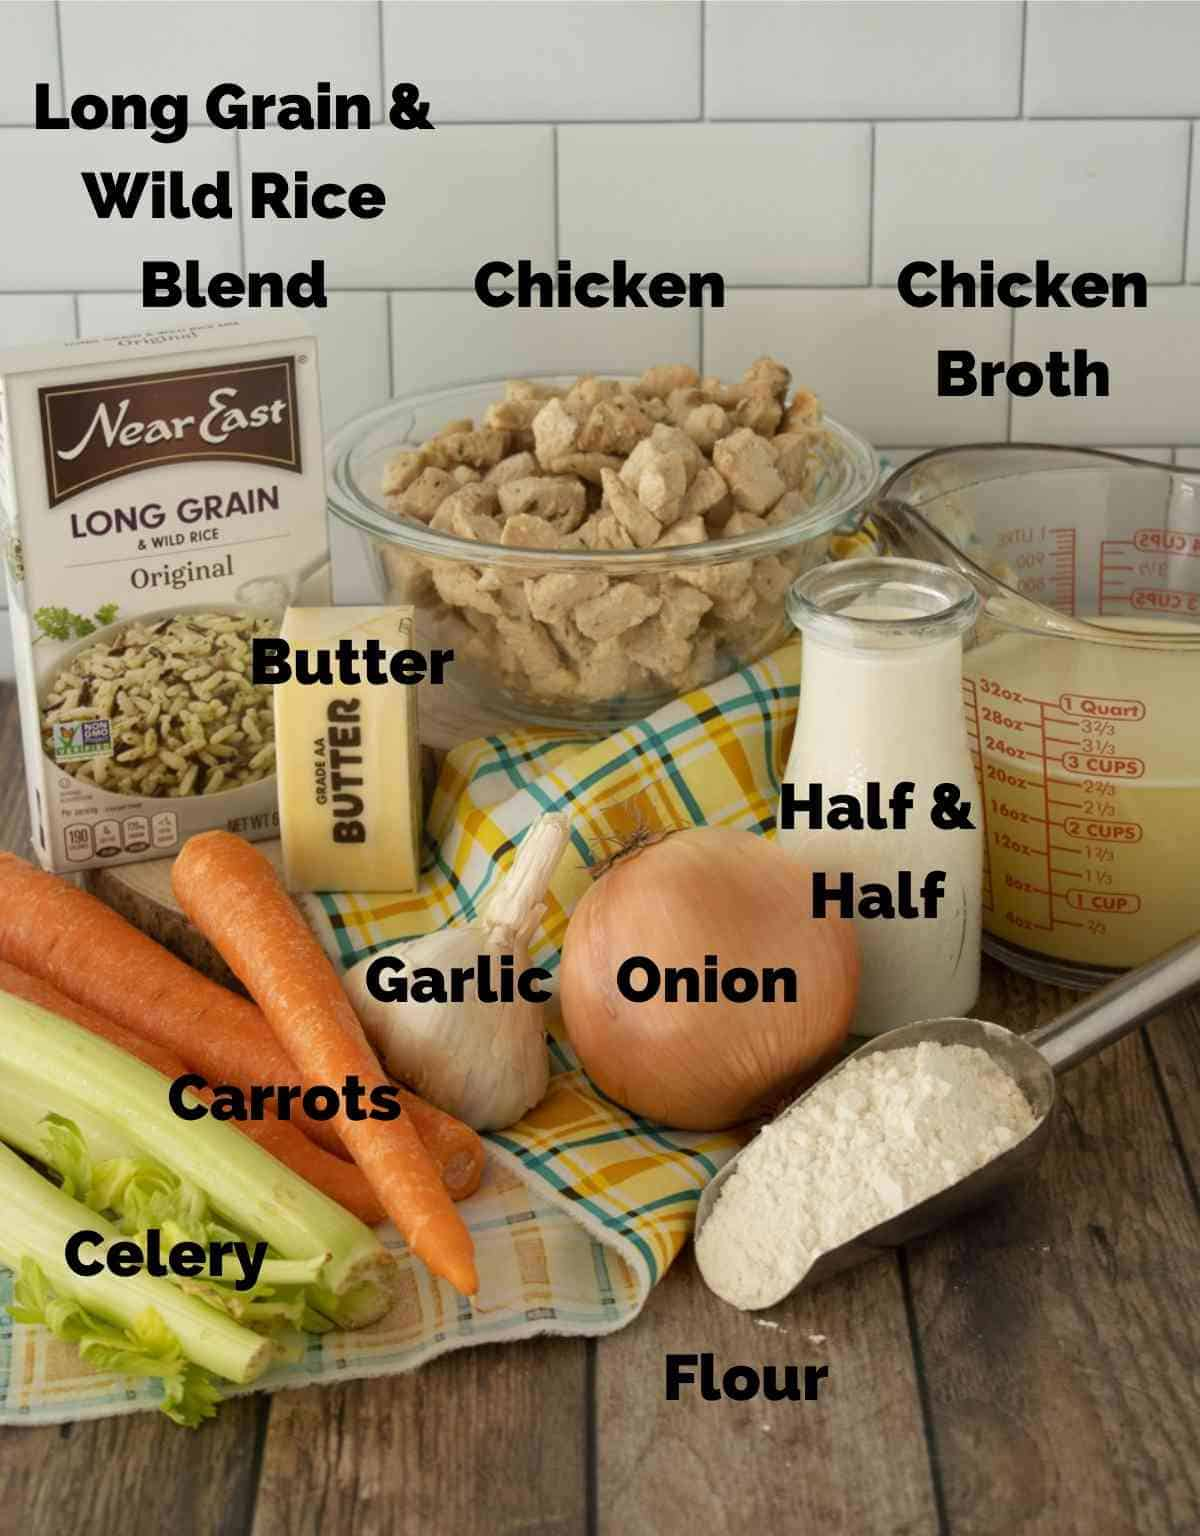 Everything you'll need to make this great recipe!